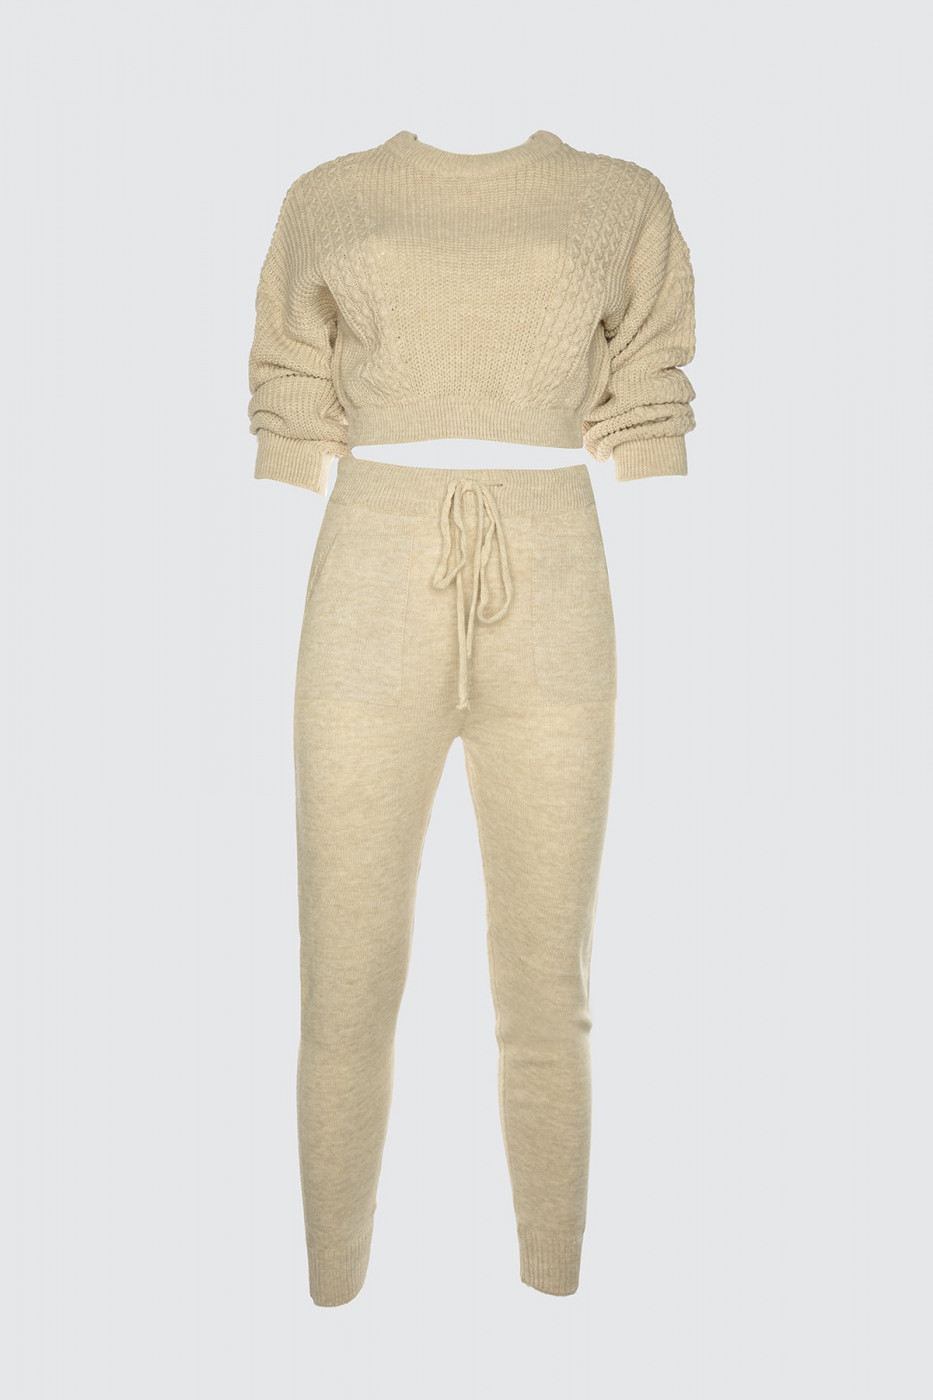 Trendyol Beige Knitted Detailed Knitwear Bottom-Top Team